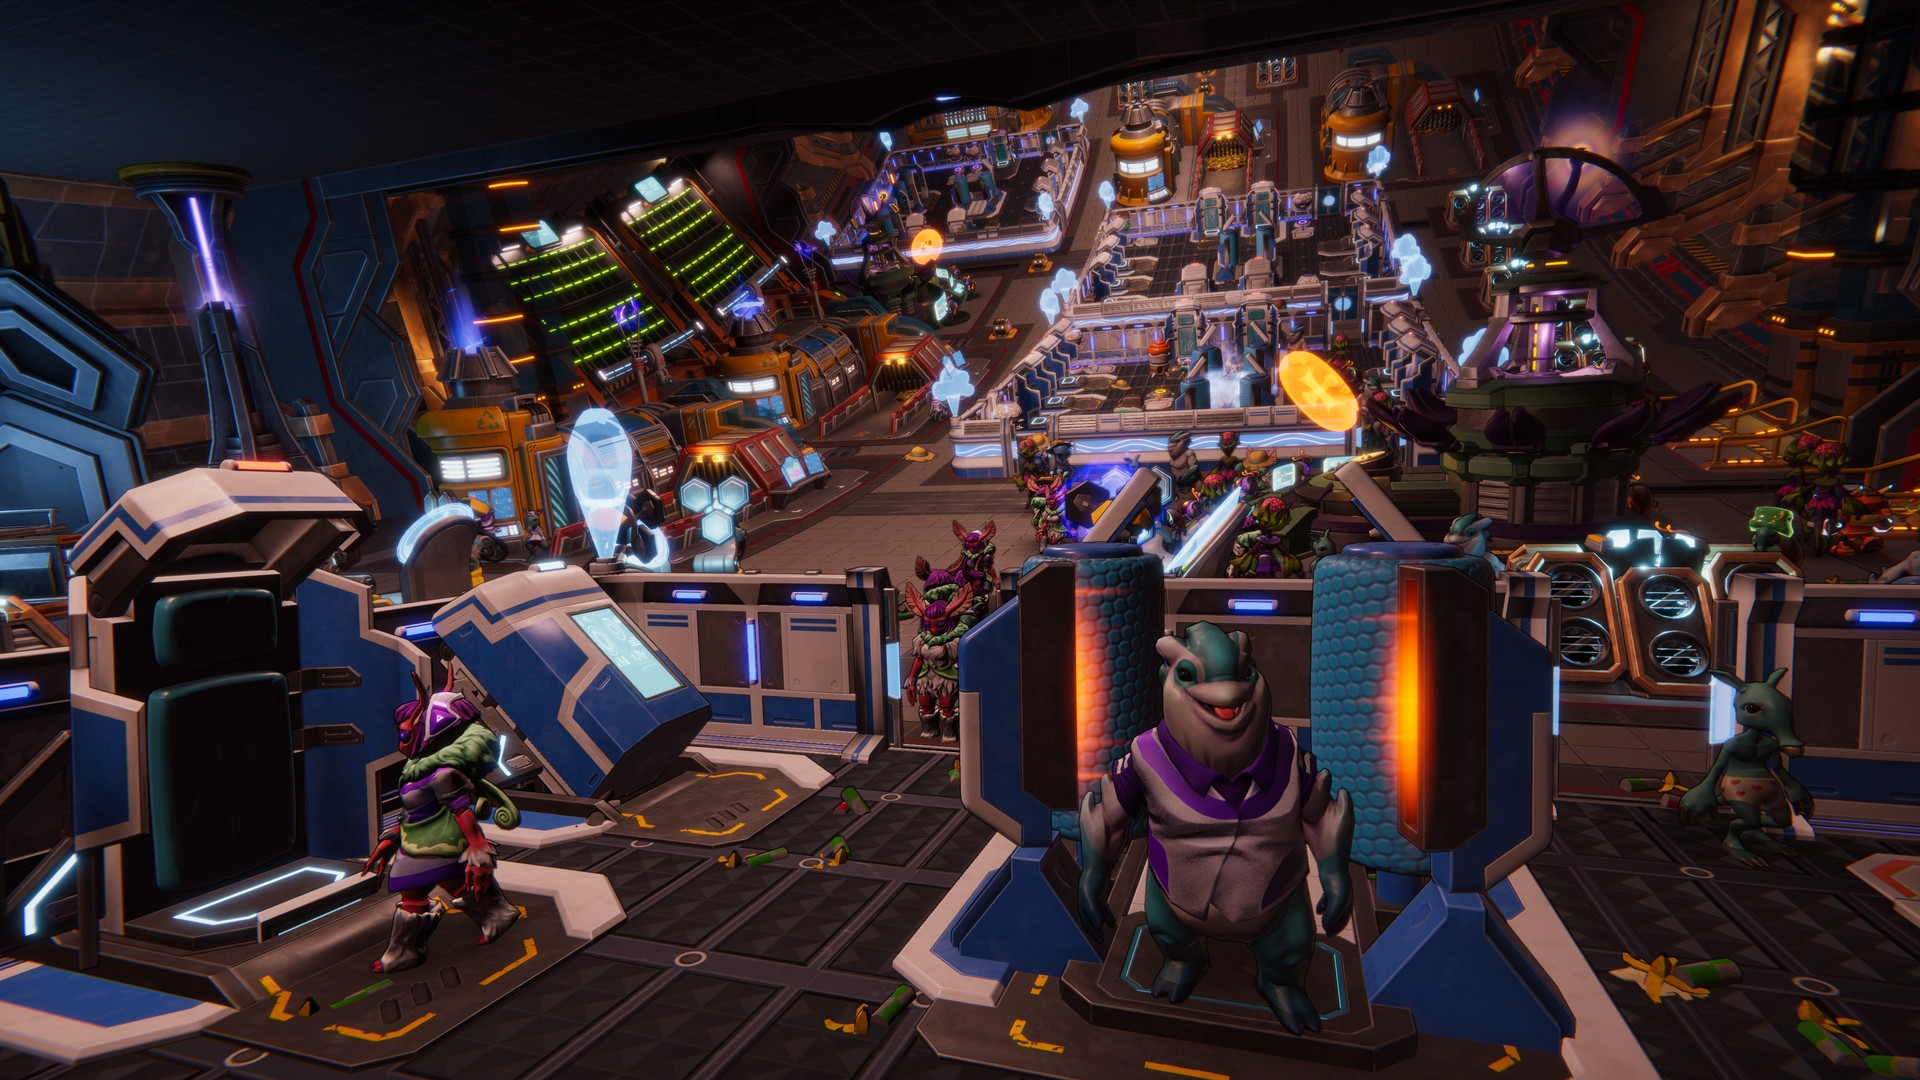 Space Management Sim Spacebase Startopia Delayed Until Spring 2021